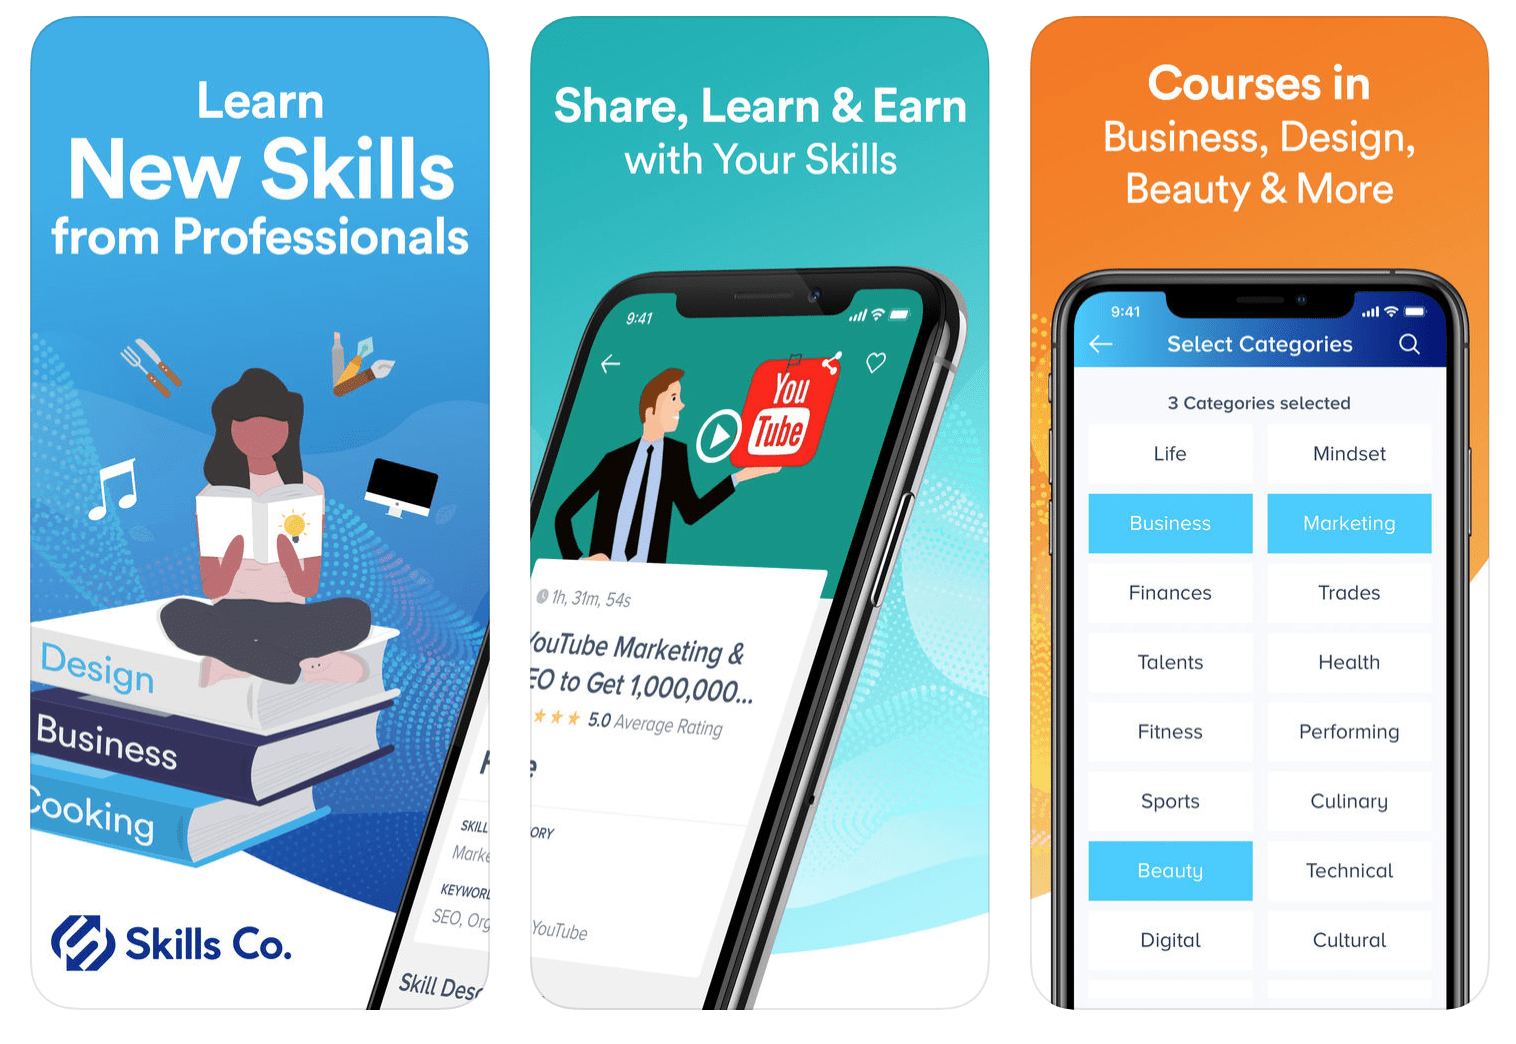 Share Skills And Get Paid For It On Skills Co.